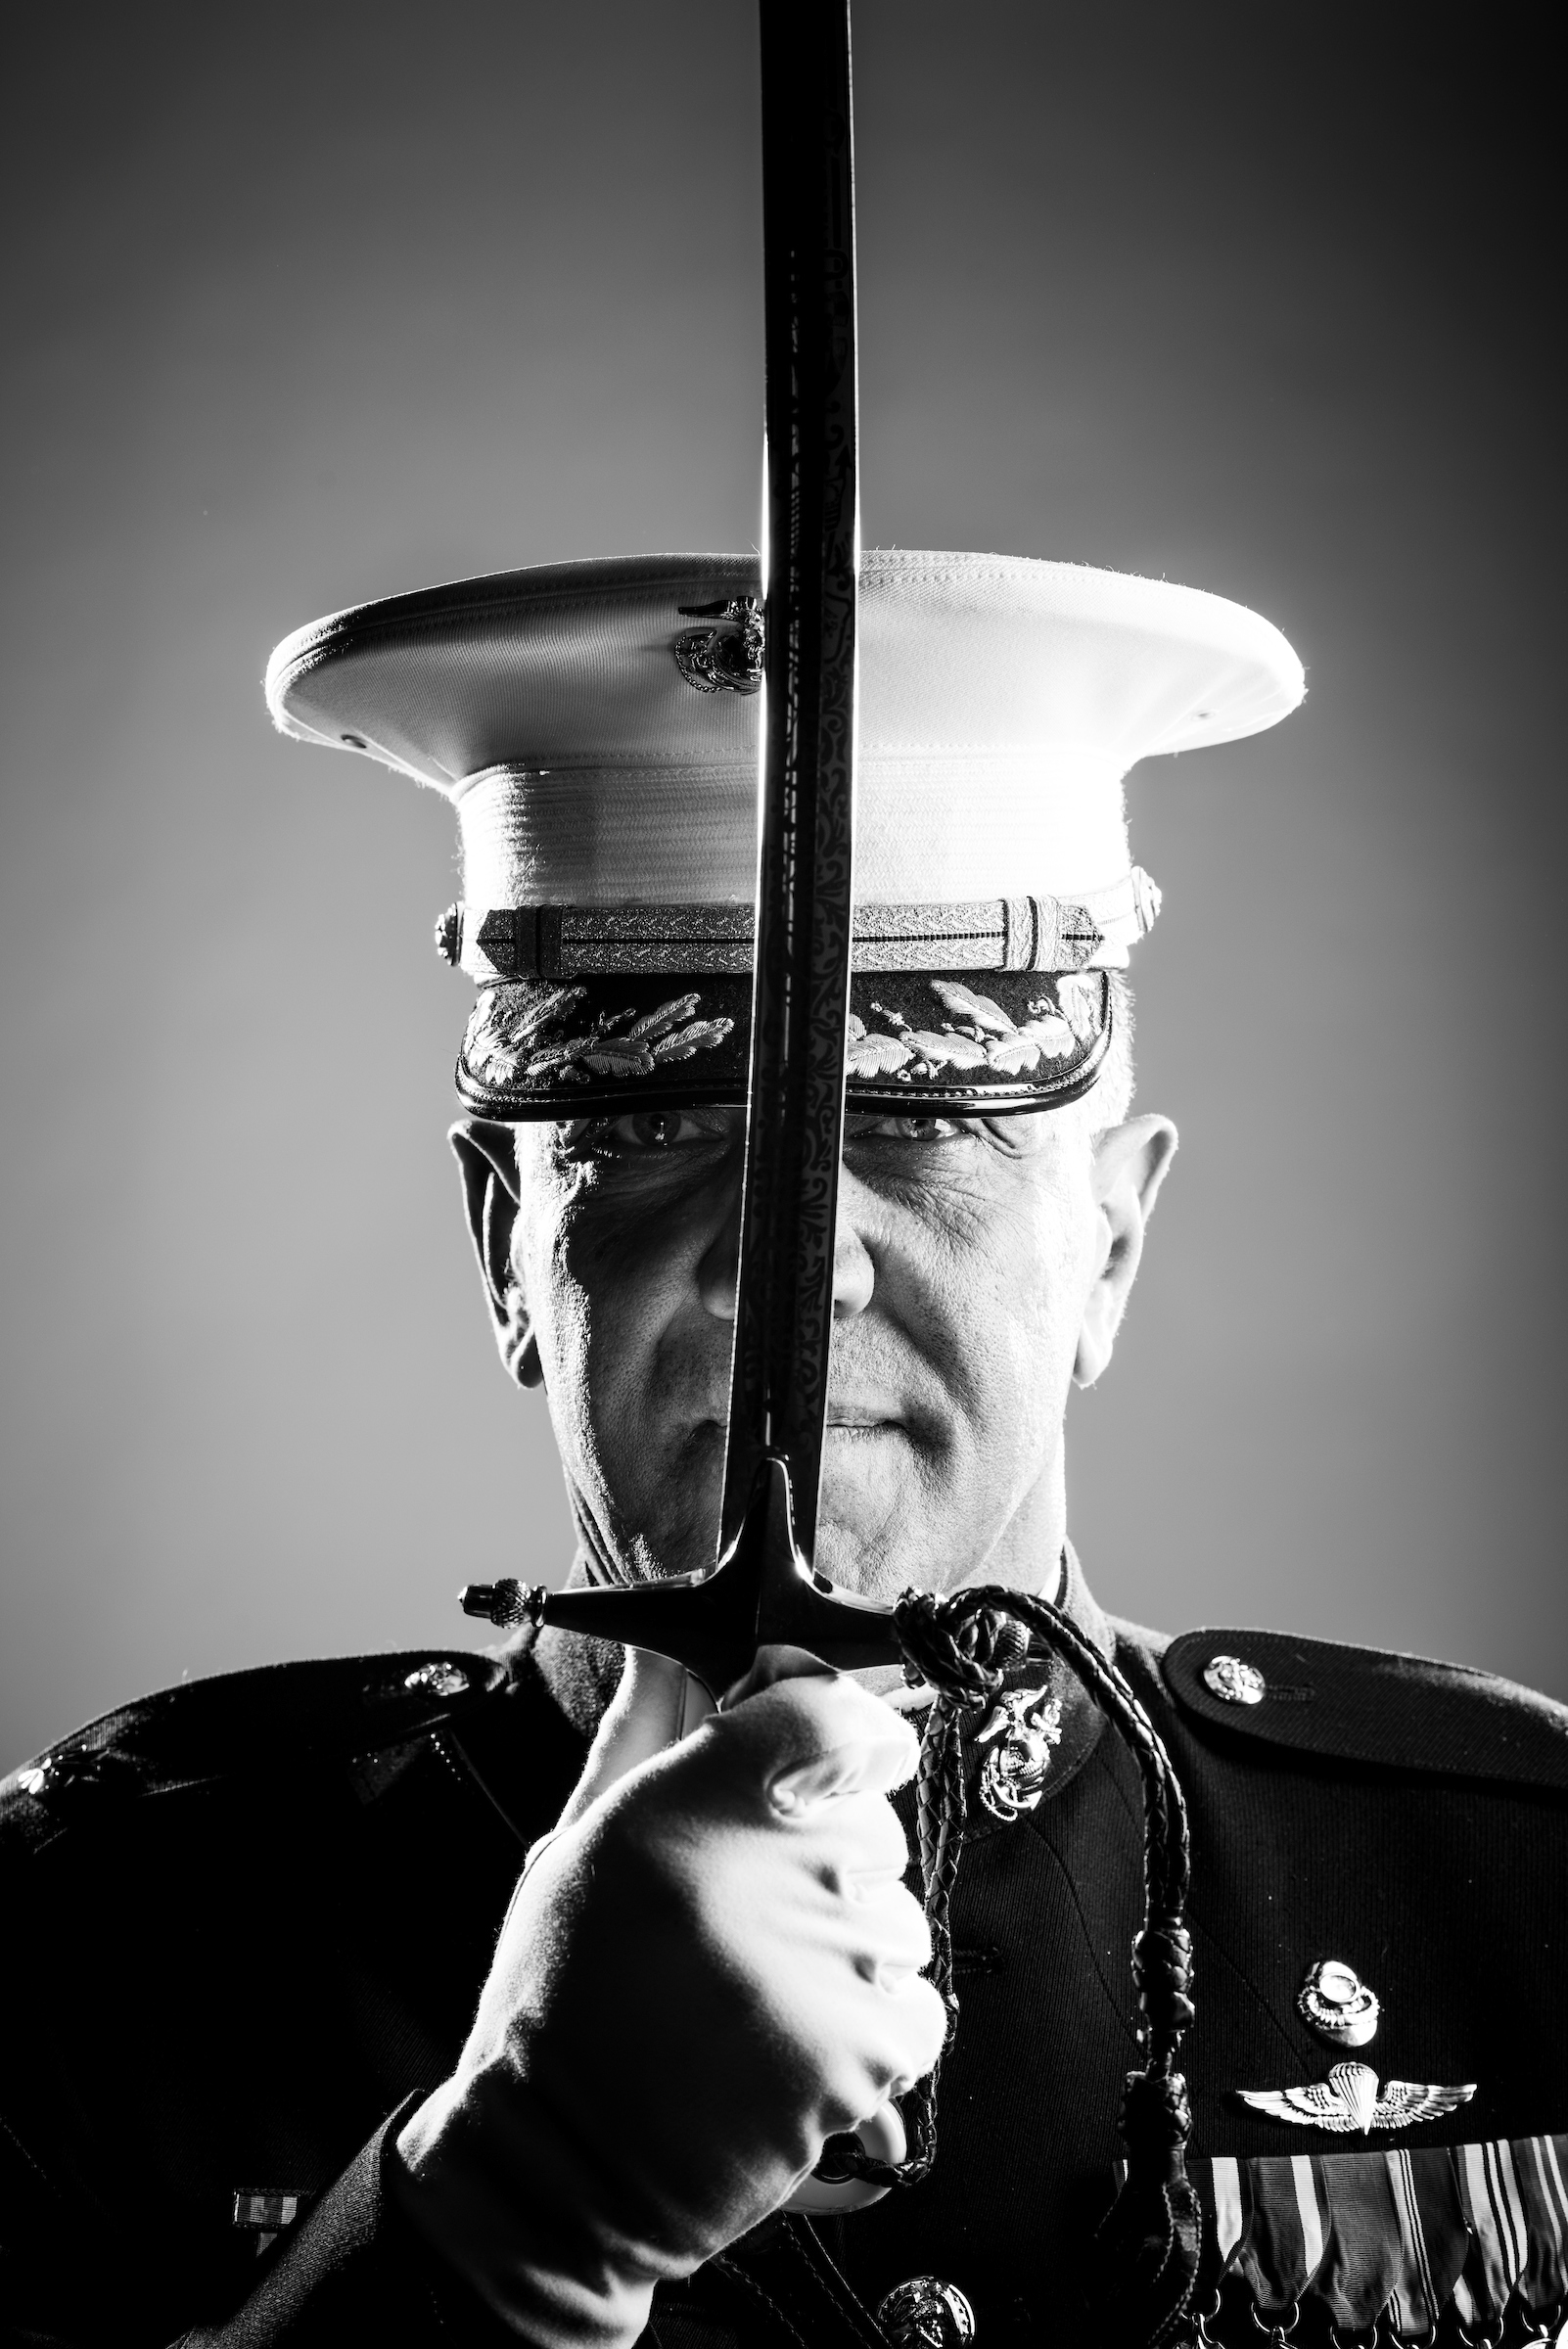 A portrait from Veterans Portrait Project by Stacy Pearsall.